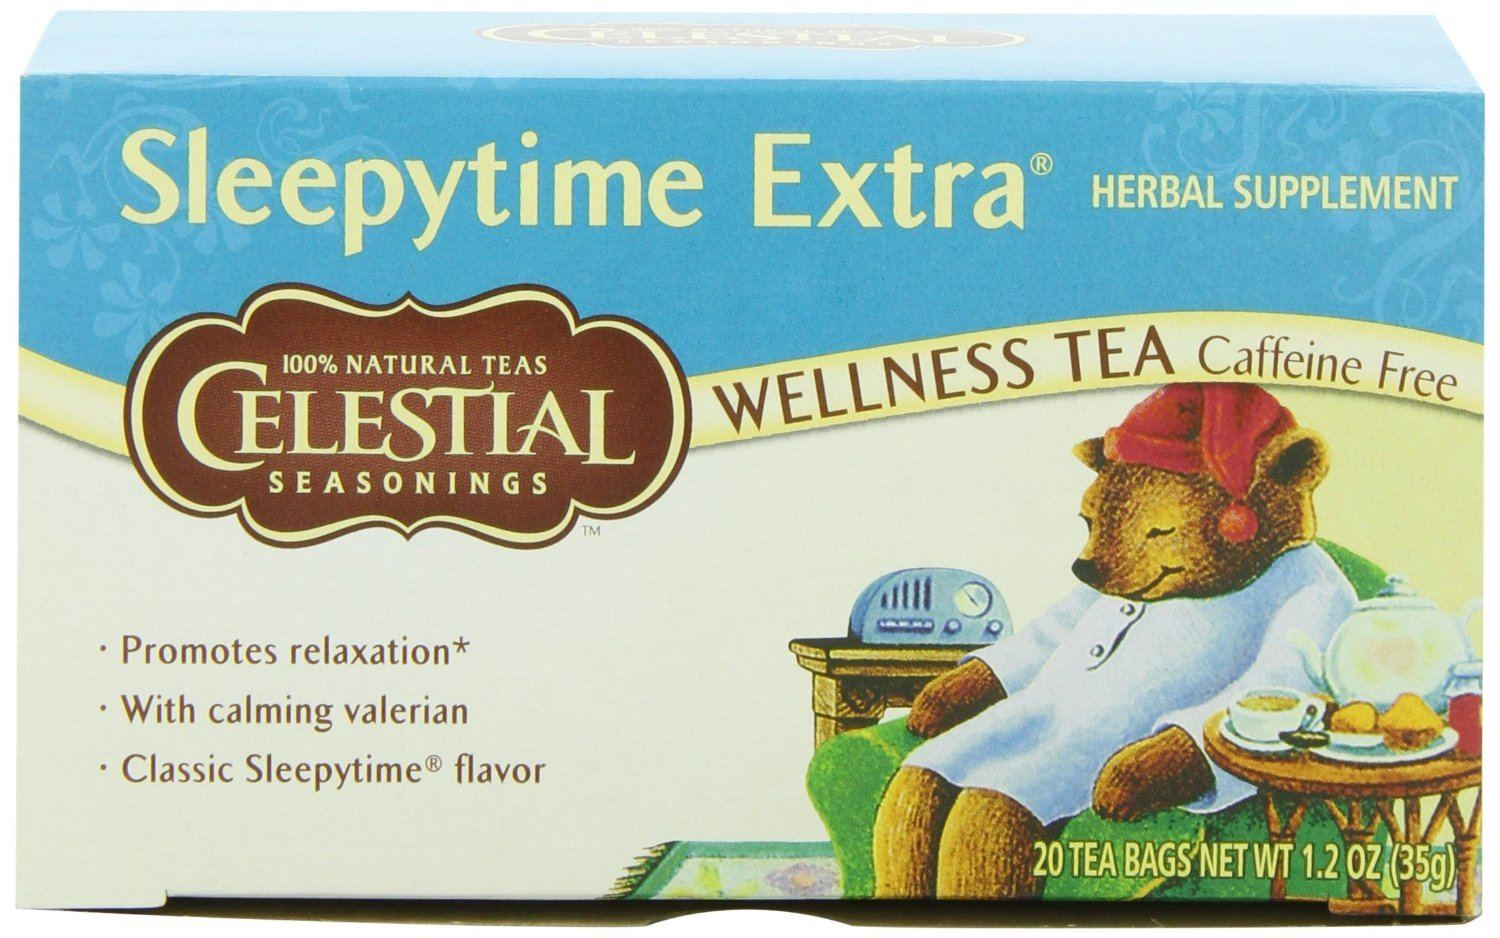 Food & Drink - Celestial Seasonings - Sleepytime Extra Wellness Decaf Tea, 20 Bags